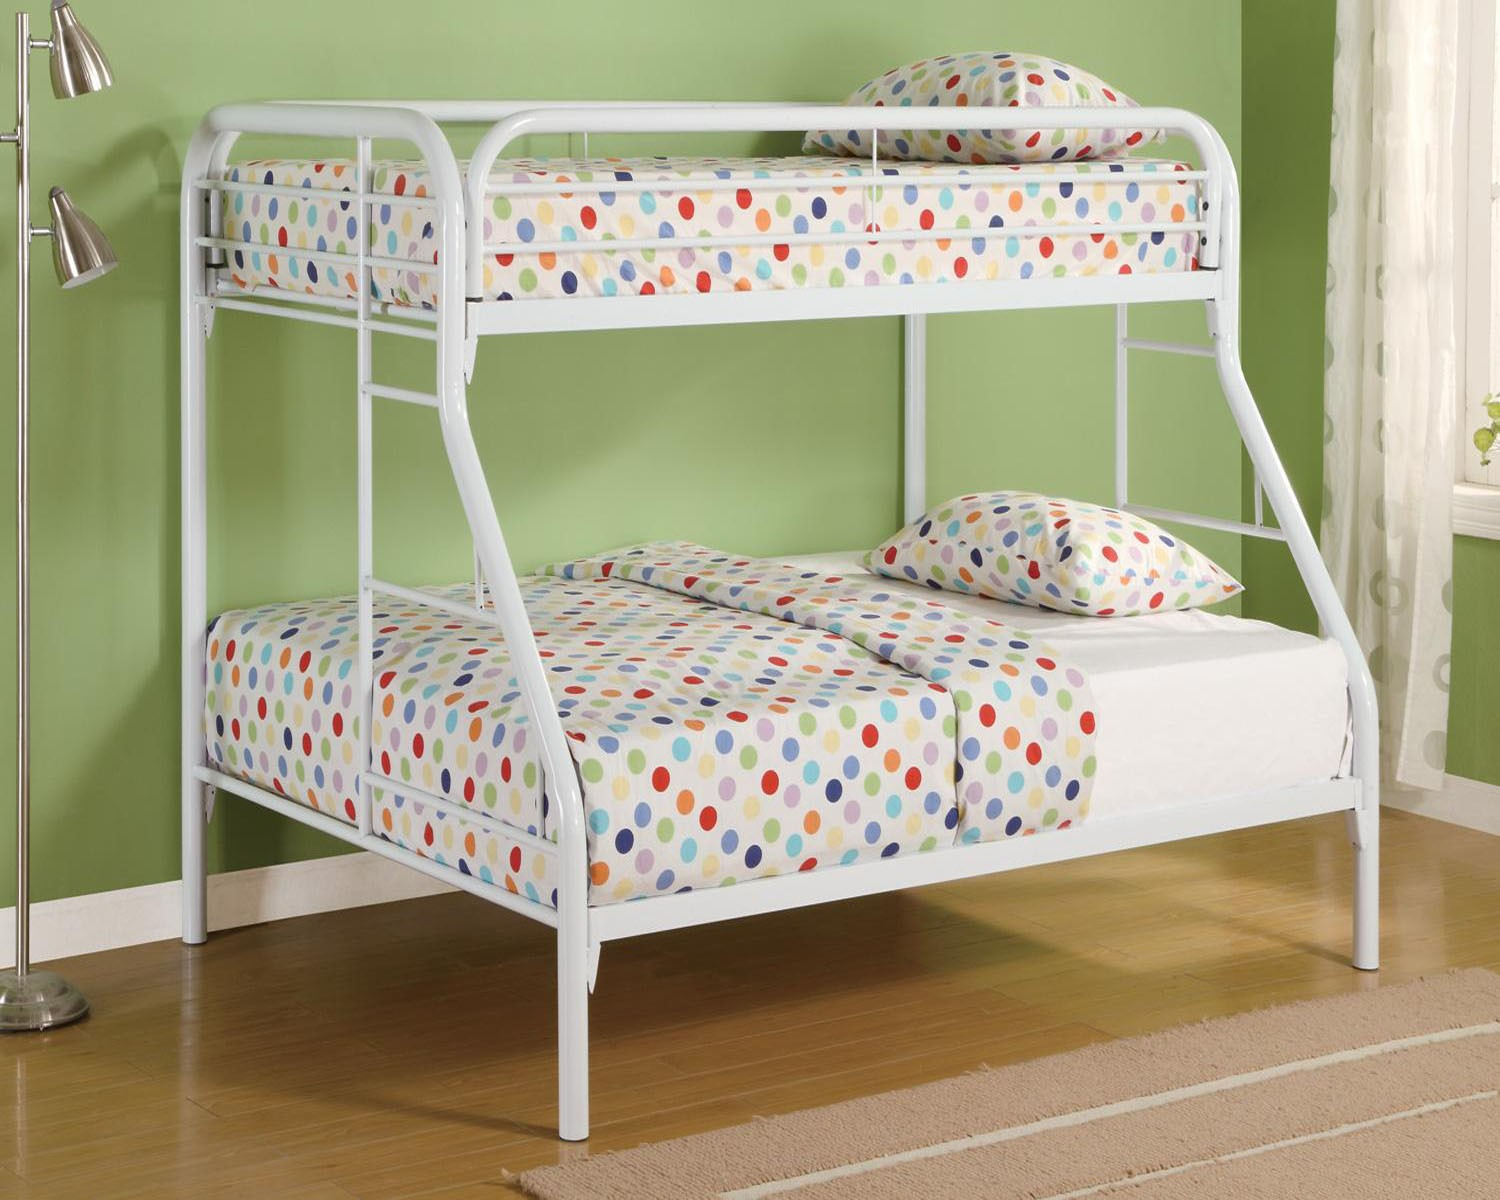 Bunk Beds Fordham By Coaster Sofas & More Knoxville